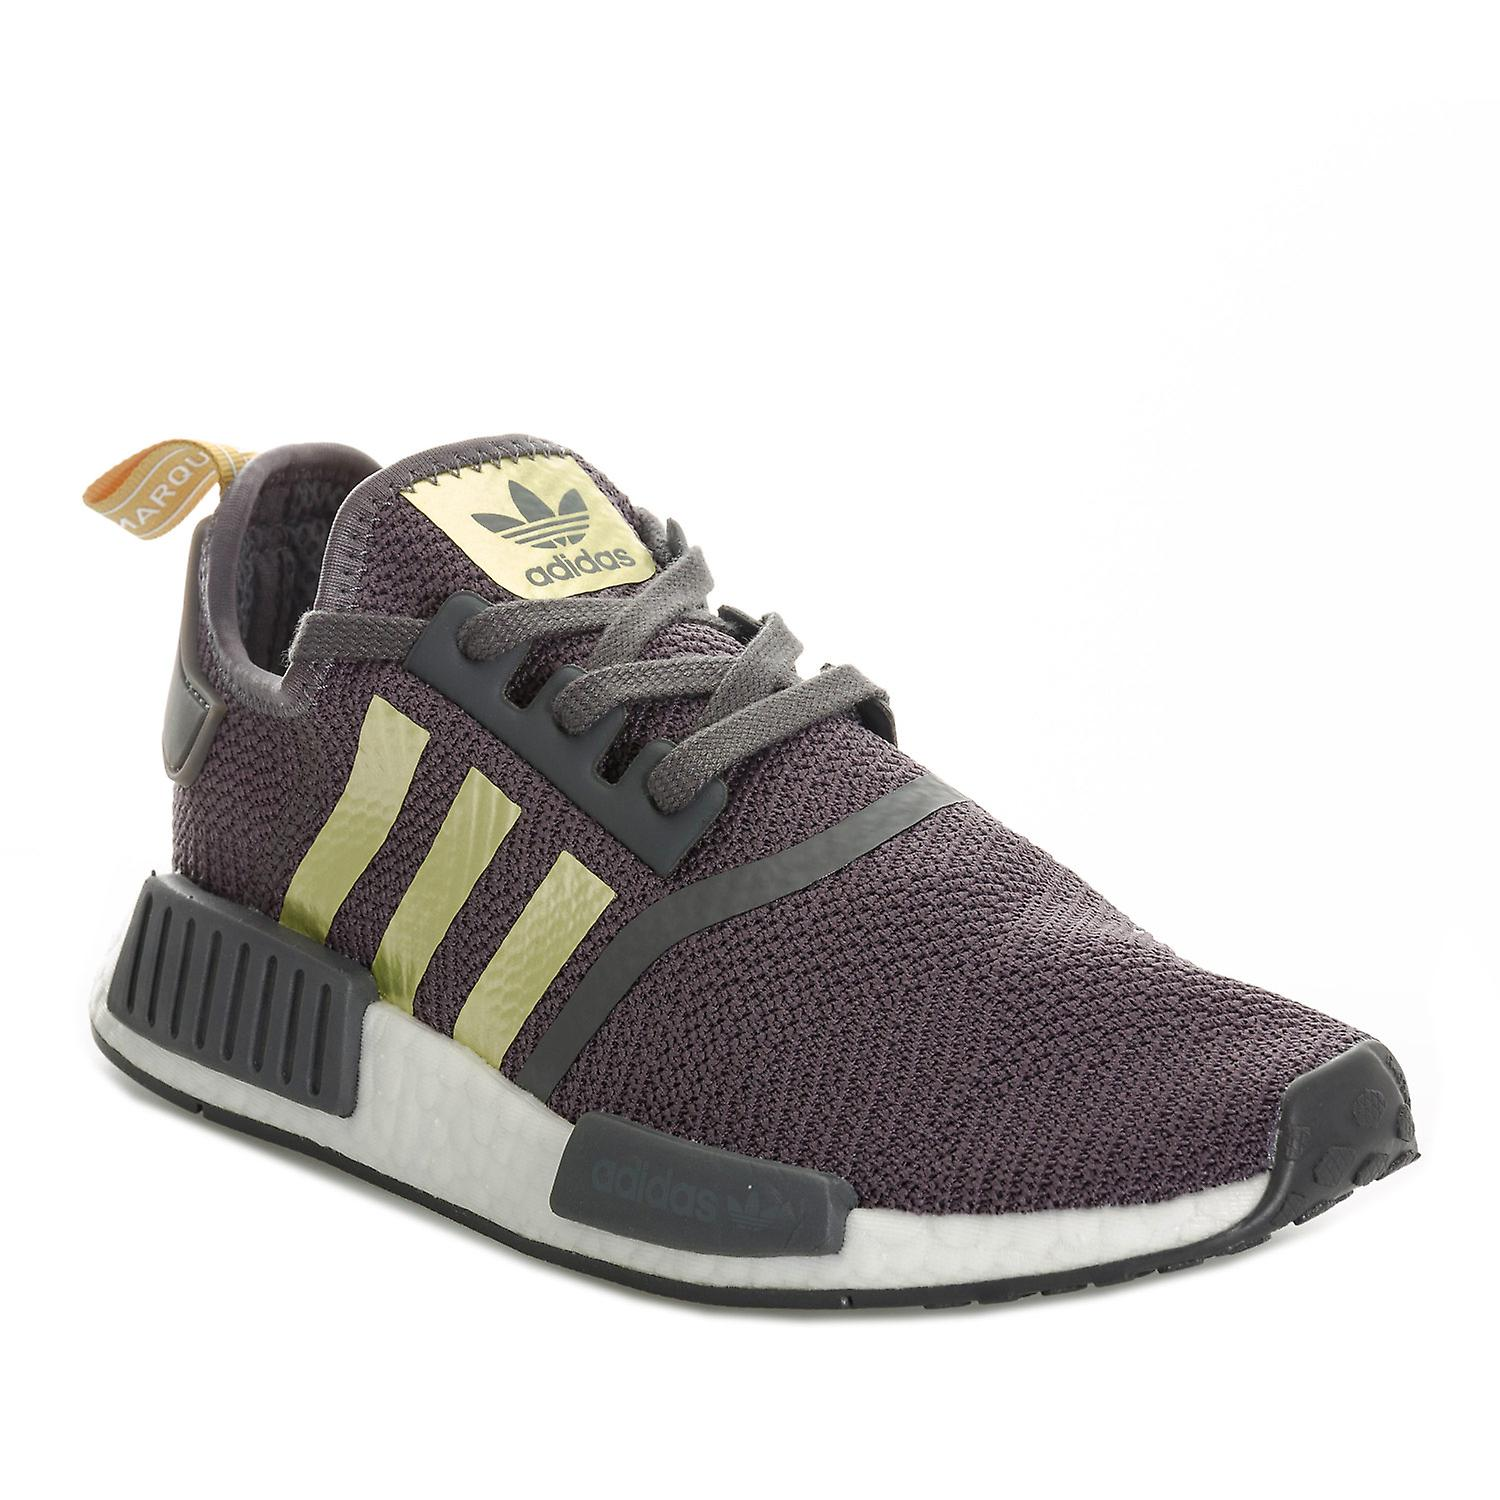 Womens adidas Originals Nmd/_R1 Trainers In Grey Five Gold Metallic